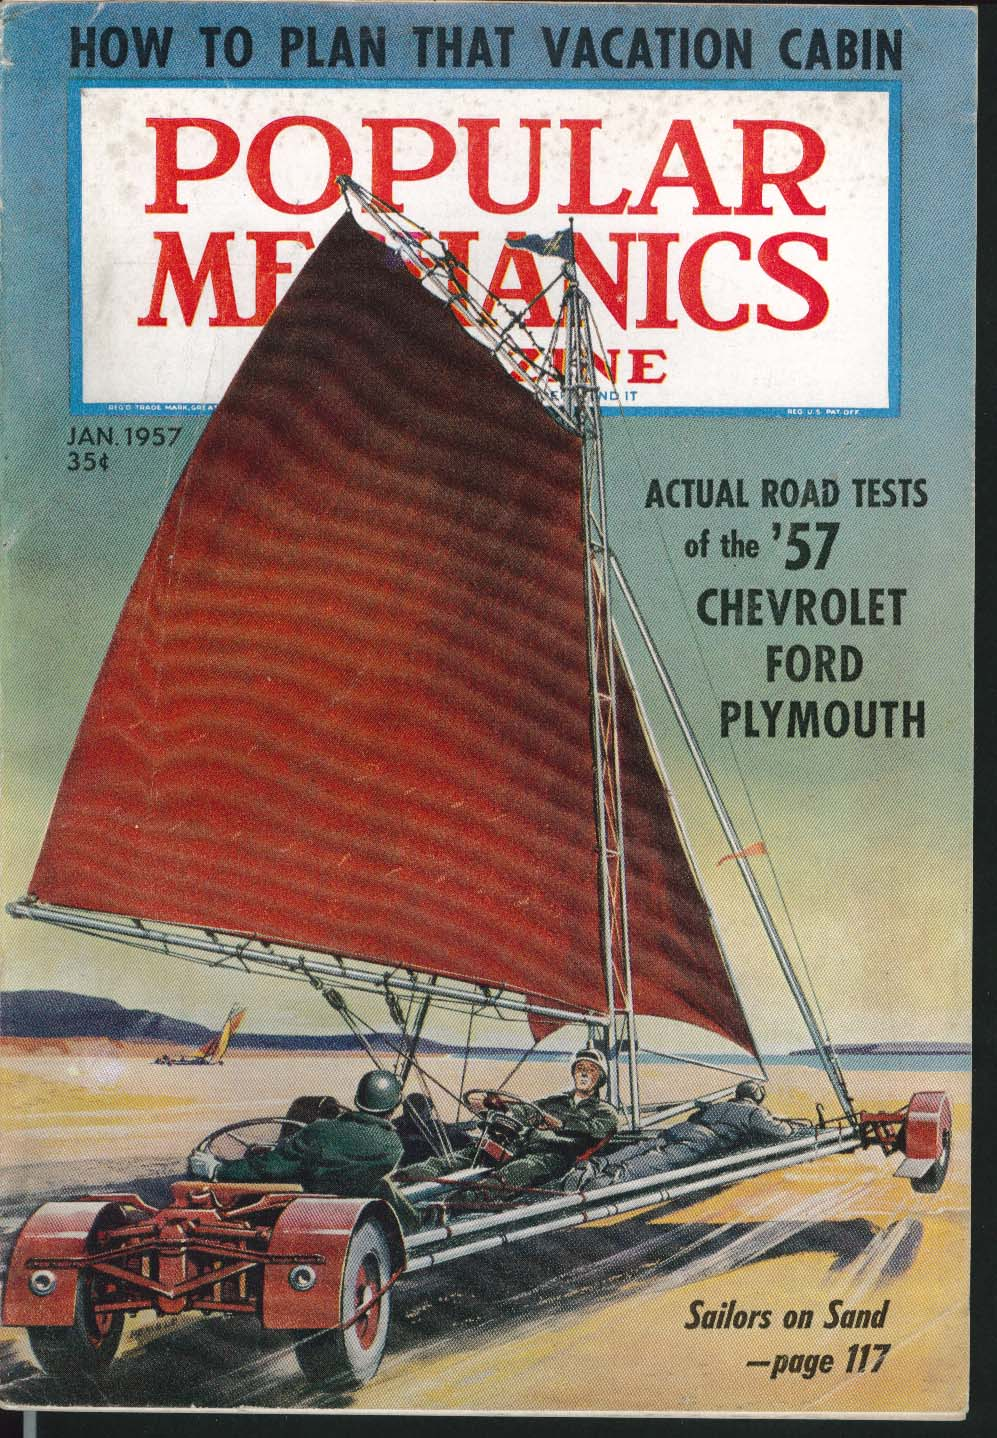 Image for POPULAR MECHANICS Chevrolet Ford Plymouth road test Lachlan Macleay model 1 1957